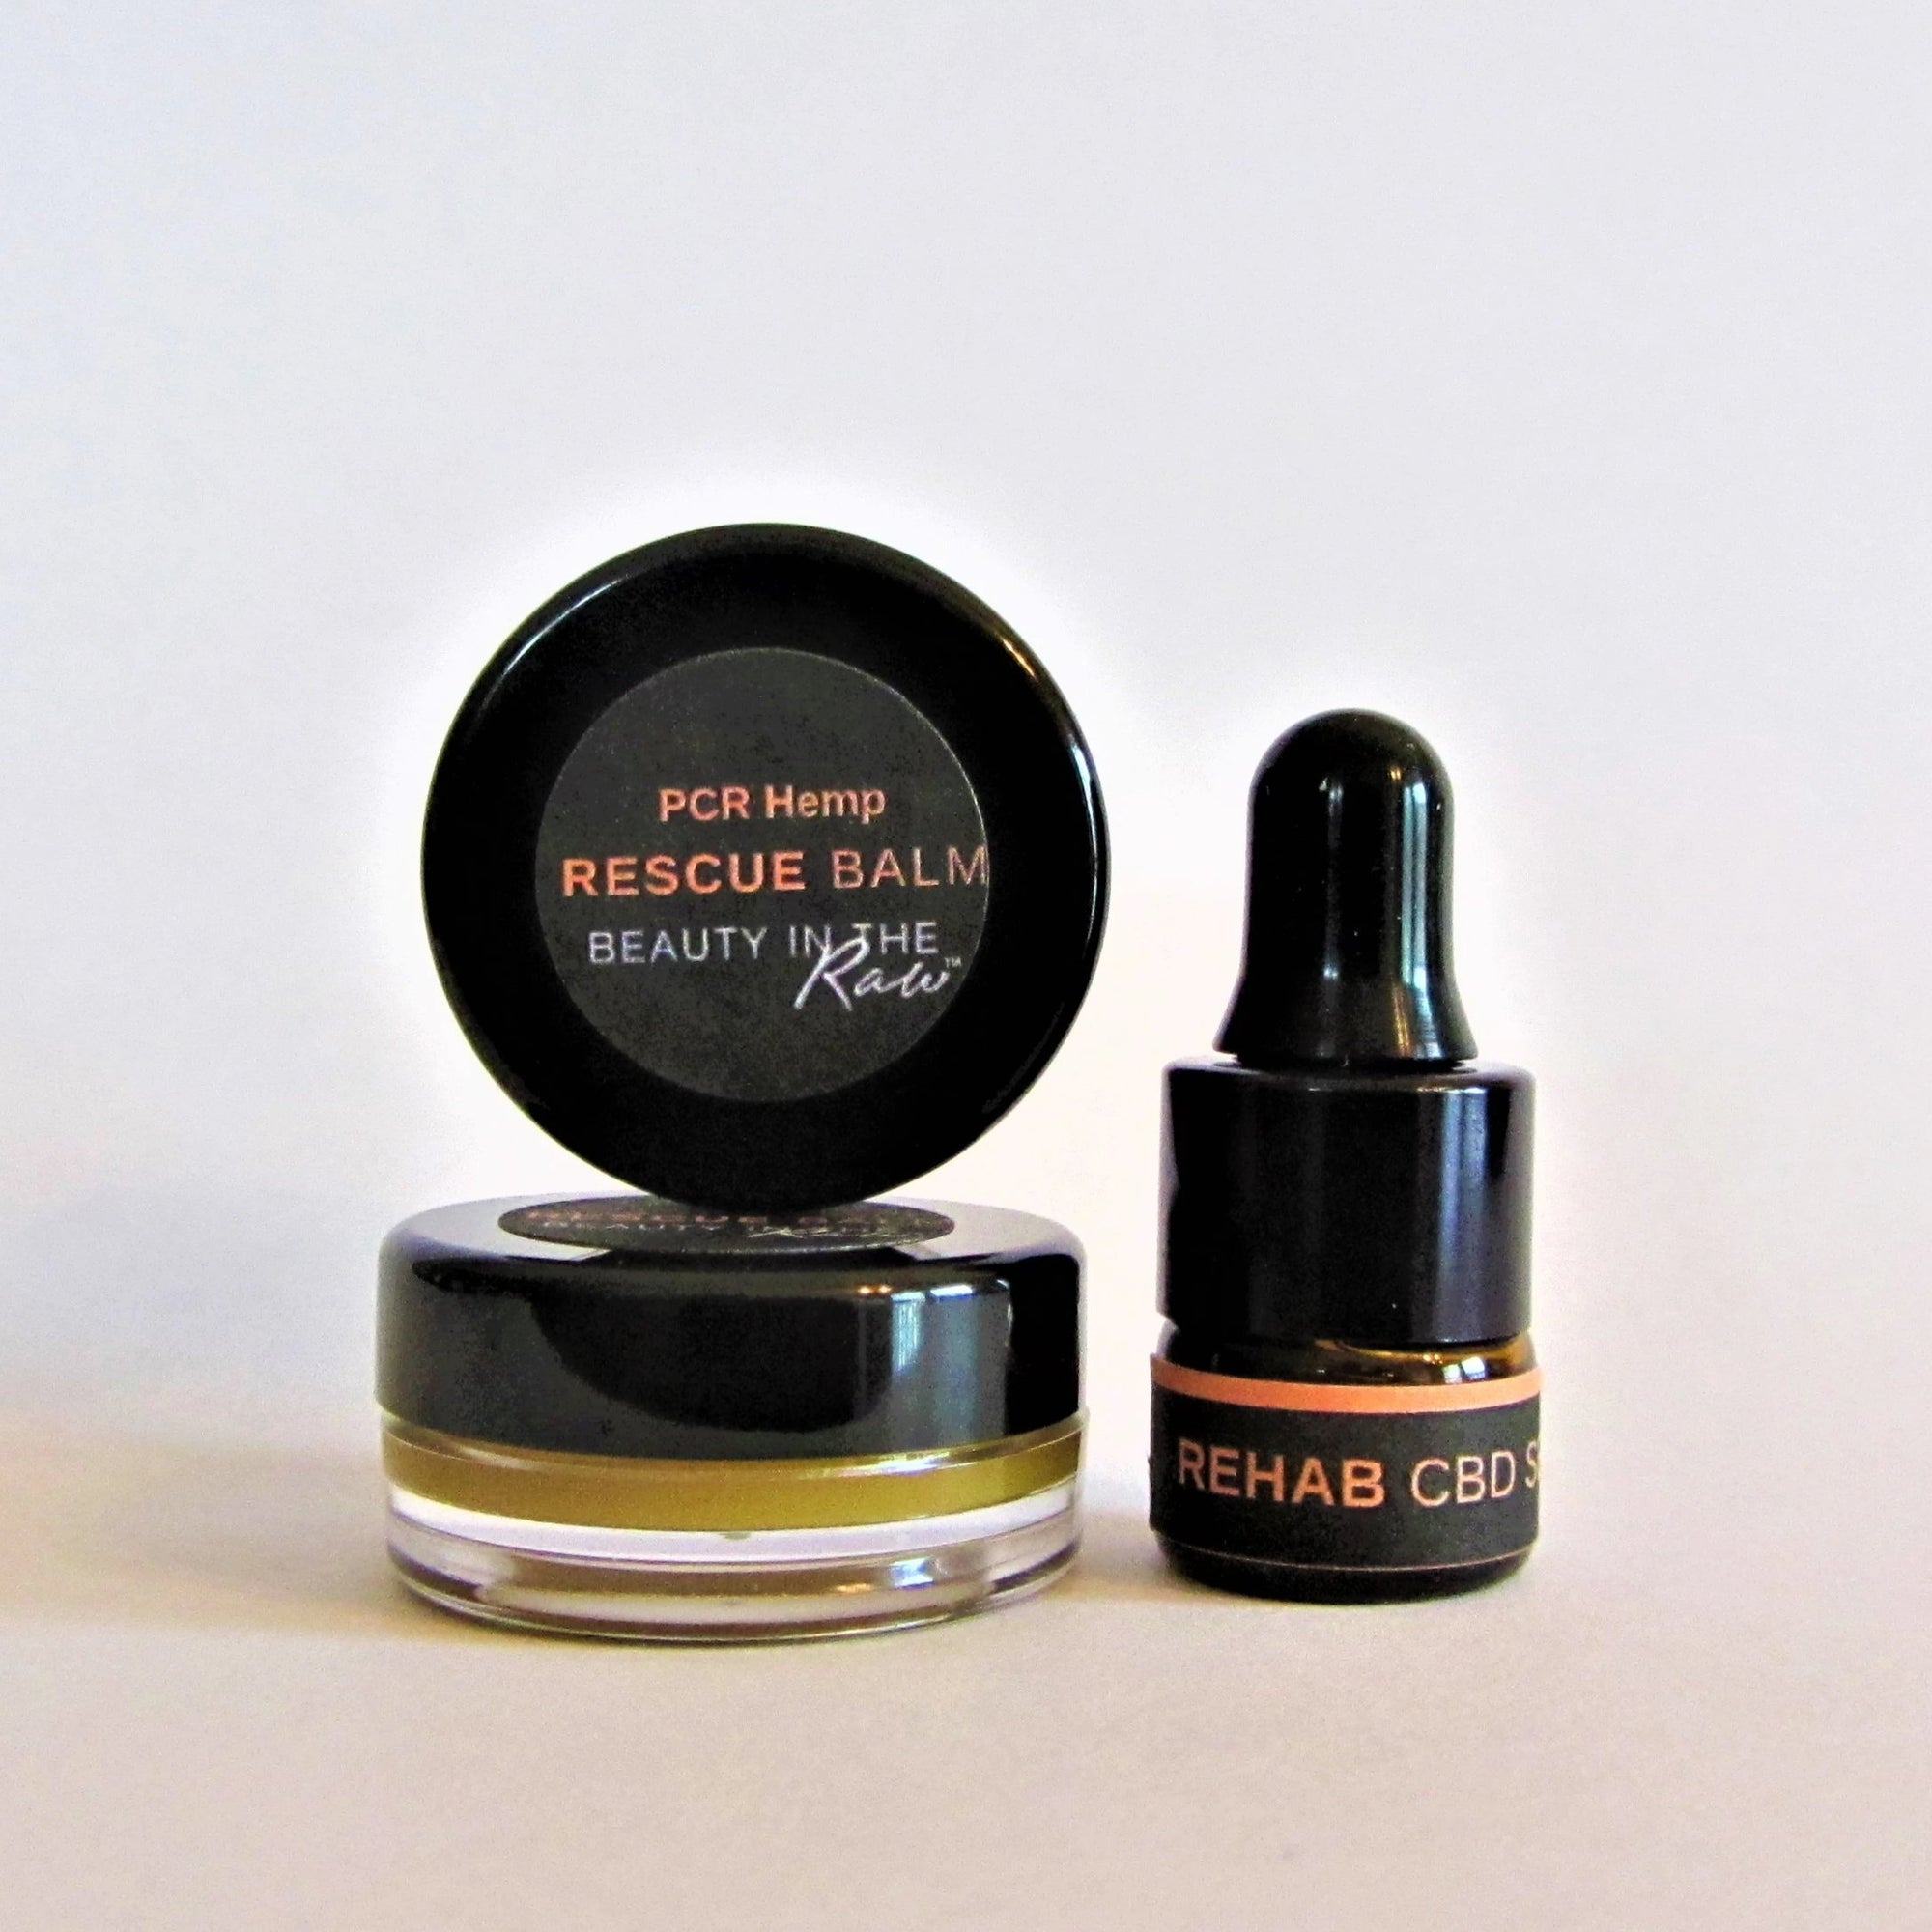 Mini CBD Skincare Discovery Set with trial sizes of Rehab CBD Serum and CBD-infused Rescue Balm showing balm detail